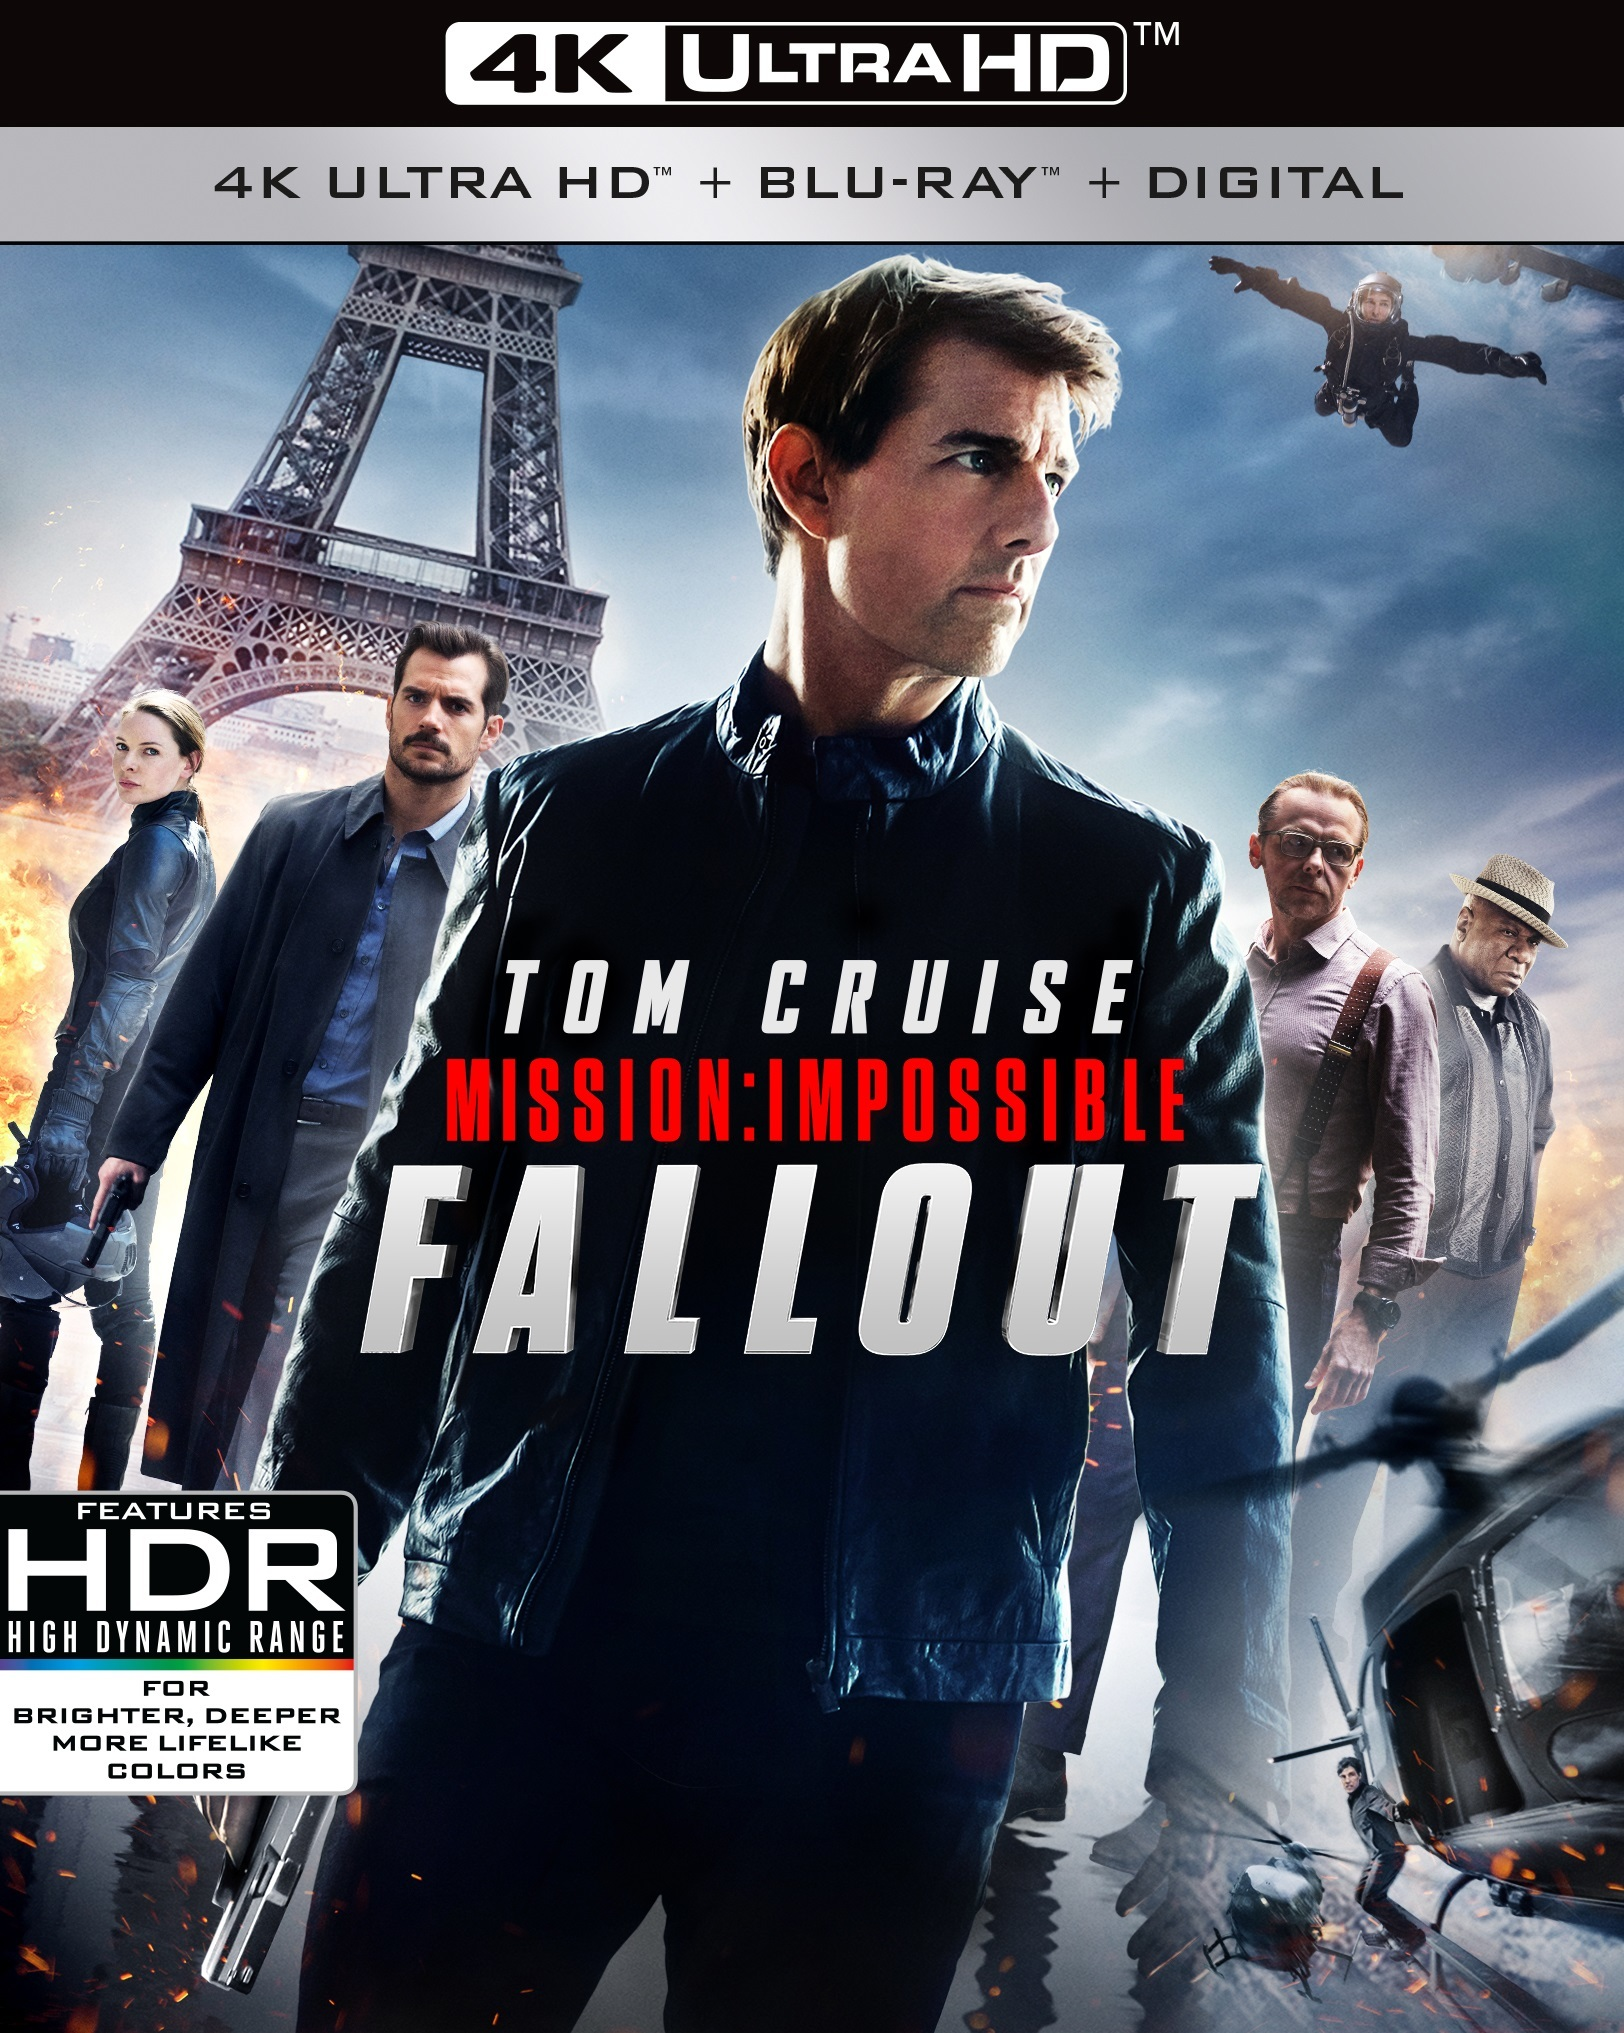 4K M2TS ] Mission Impossible Fallout 2018 UHD REMUX 2160p HEVC Atmos